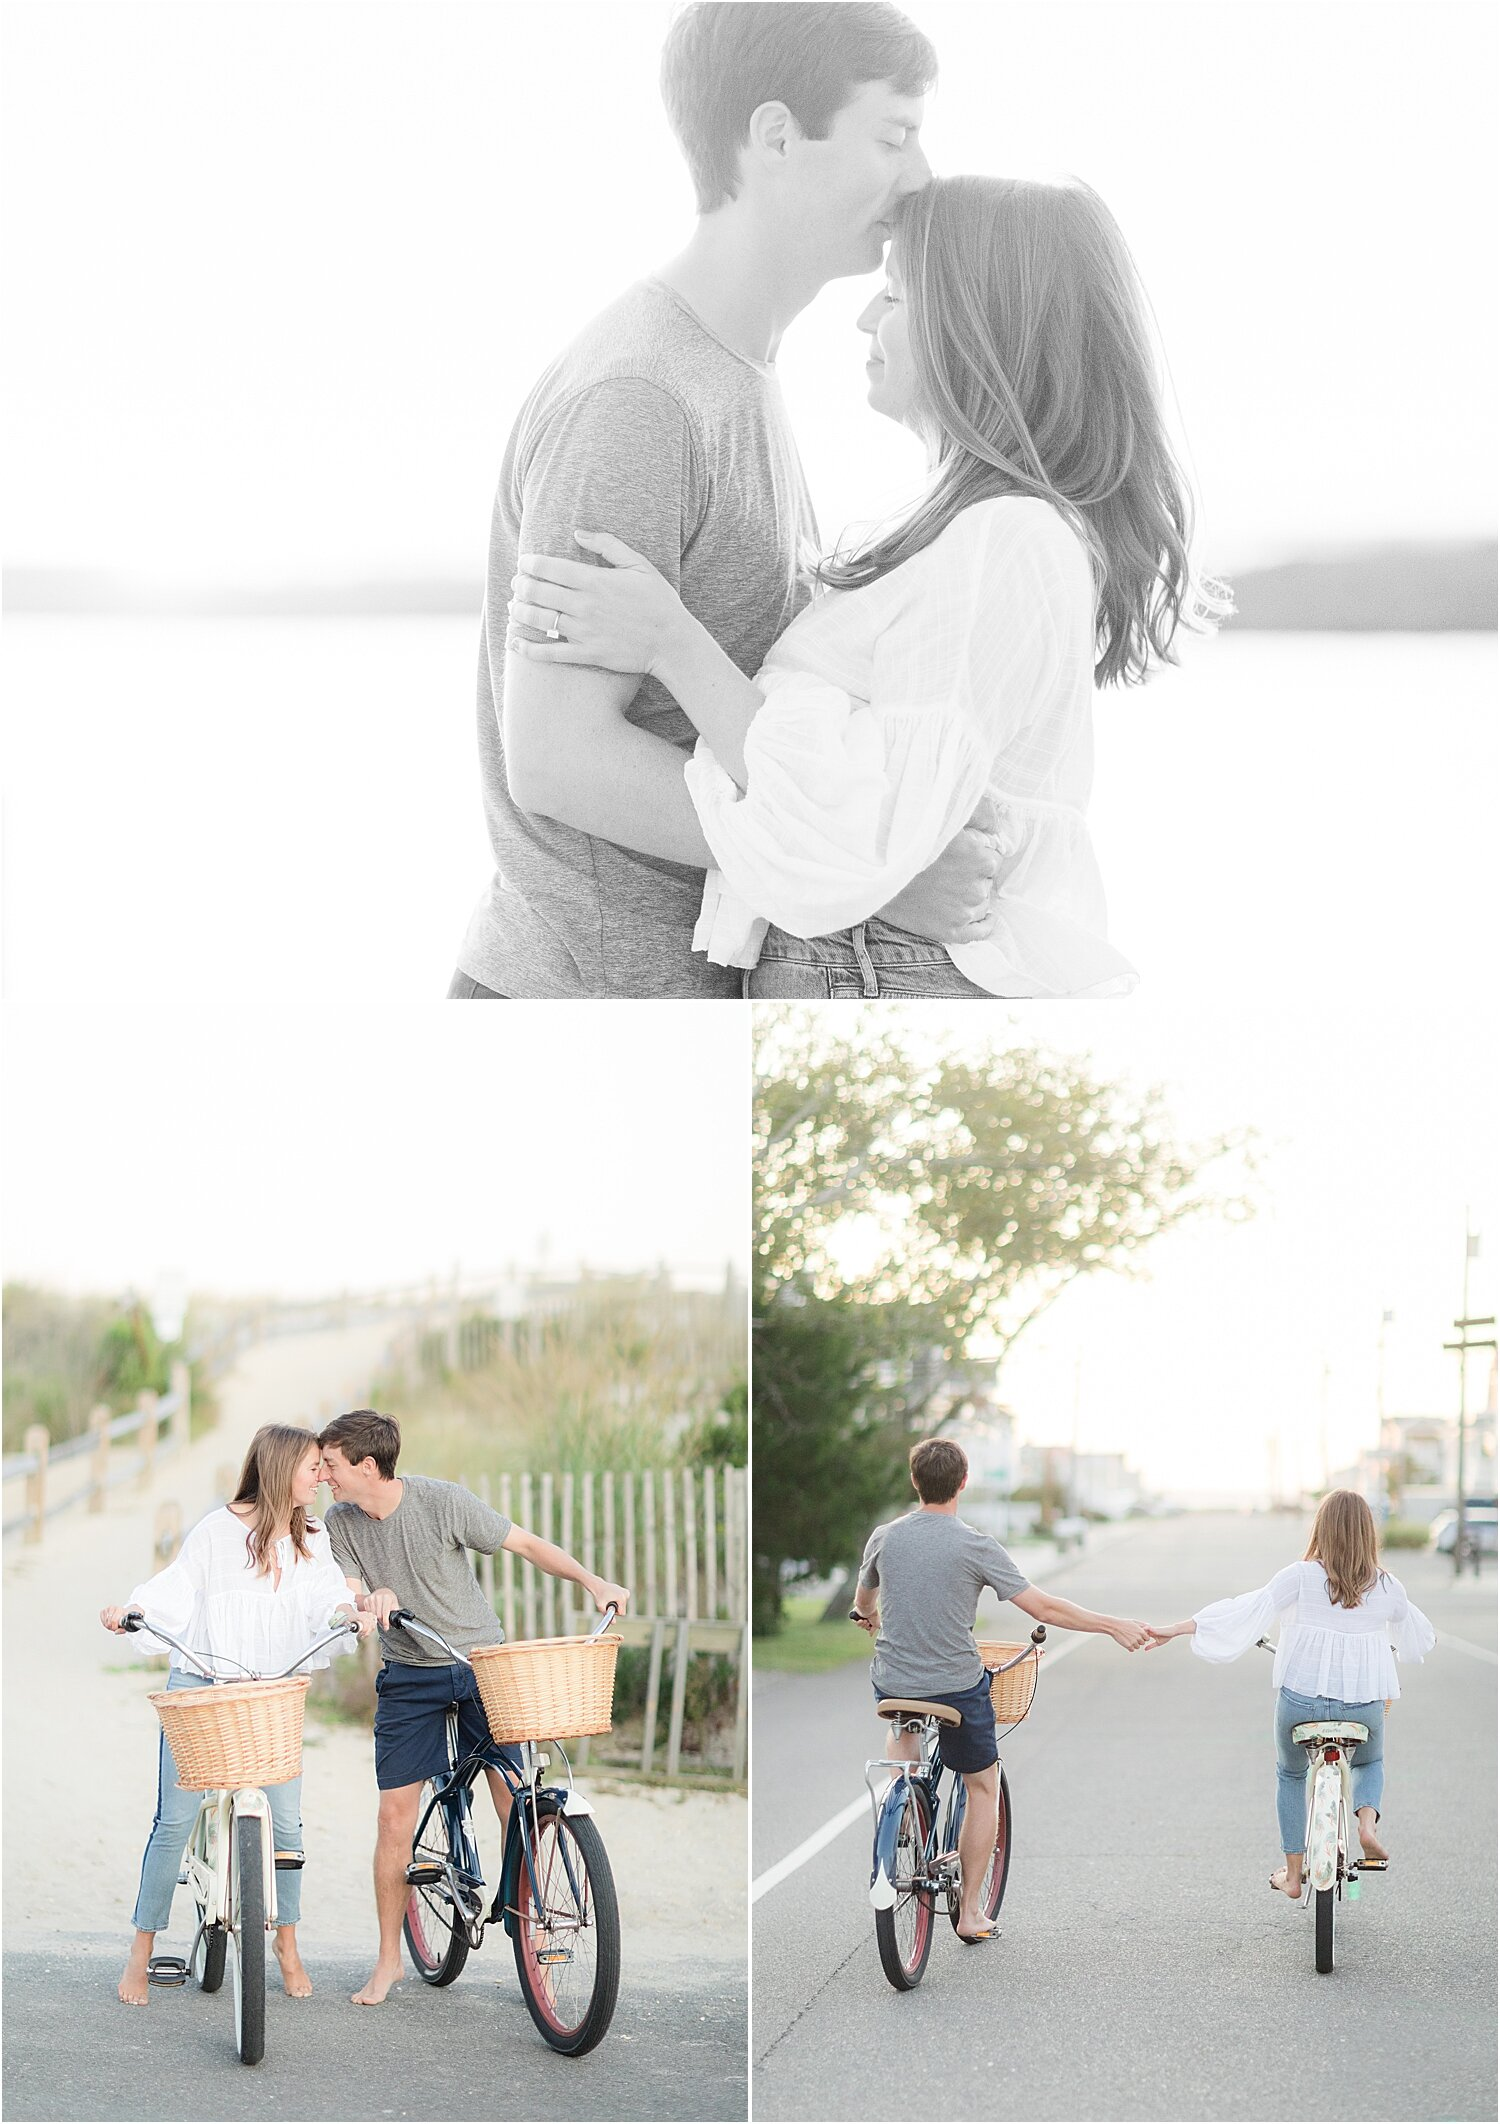 LBI engagement photos with a bike